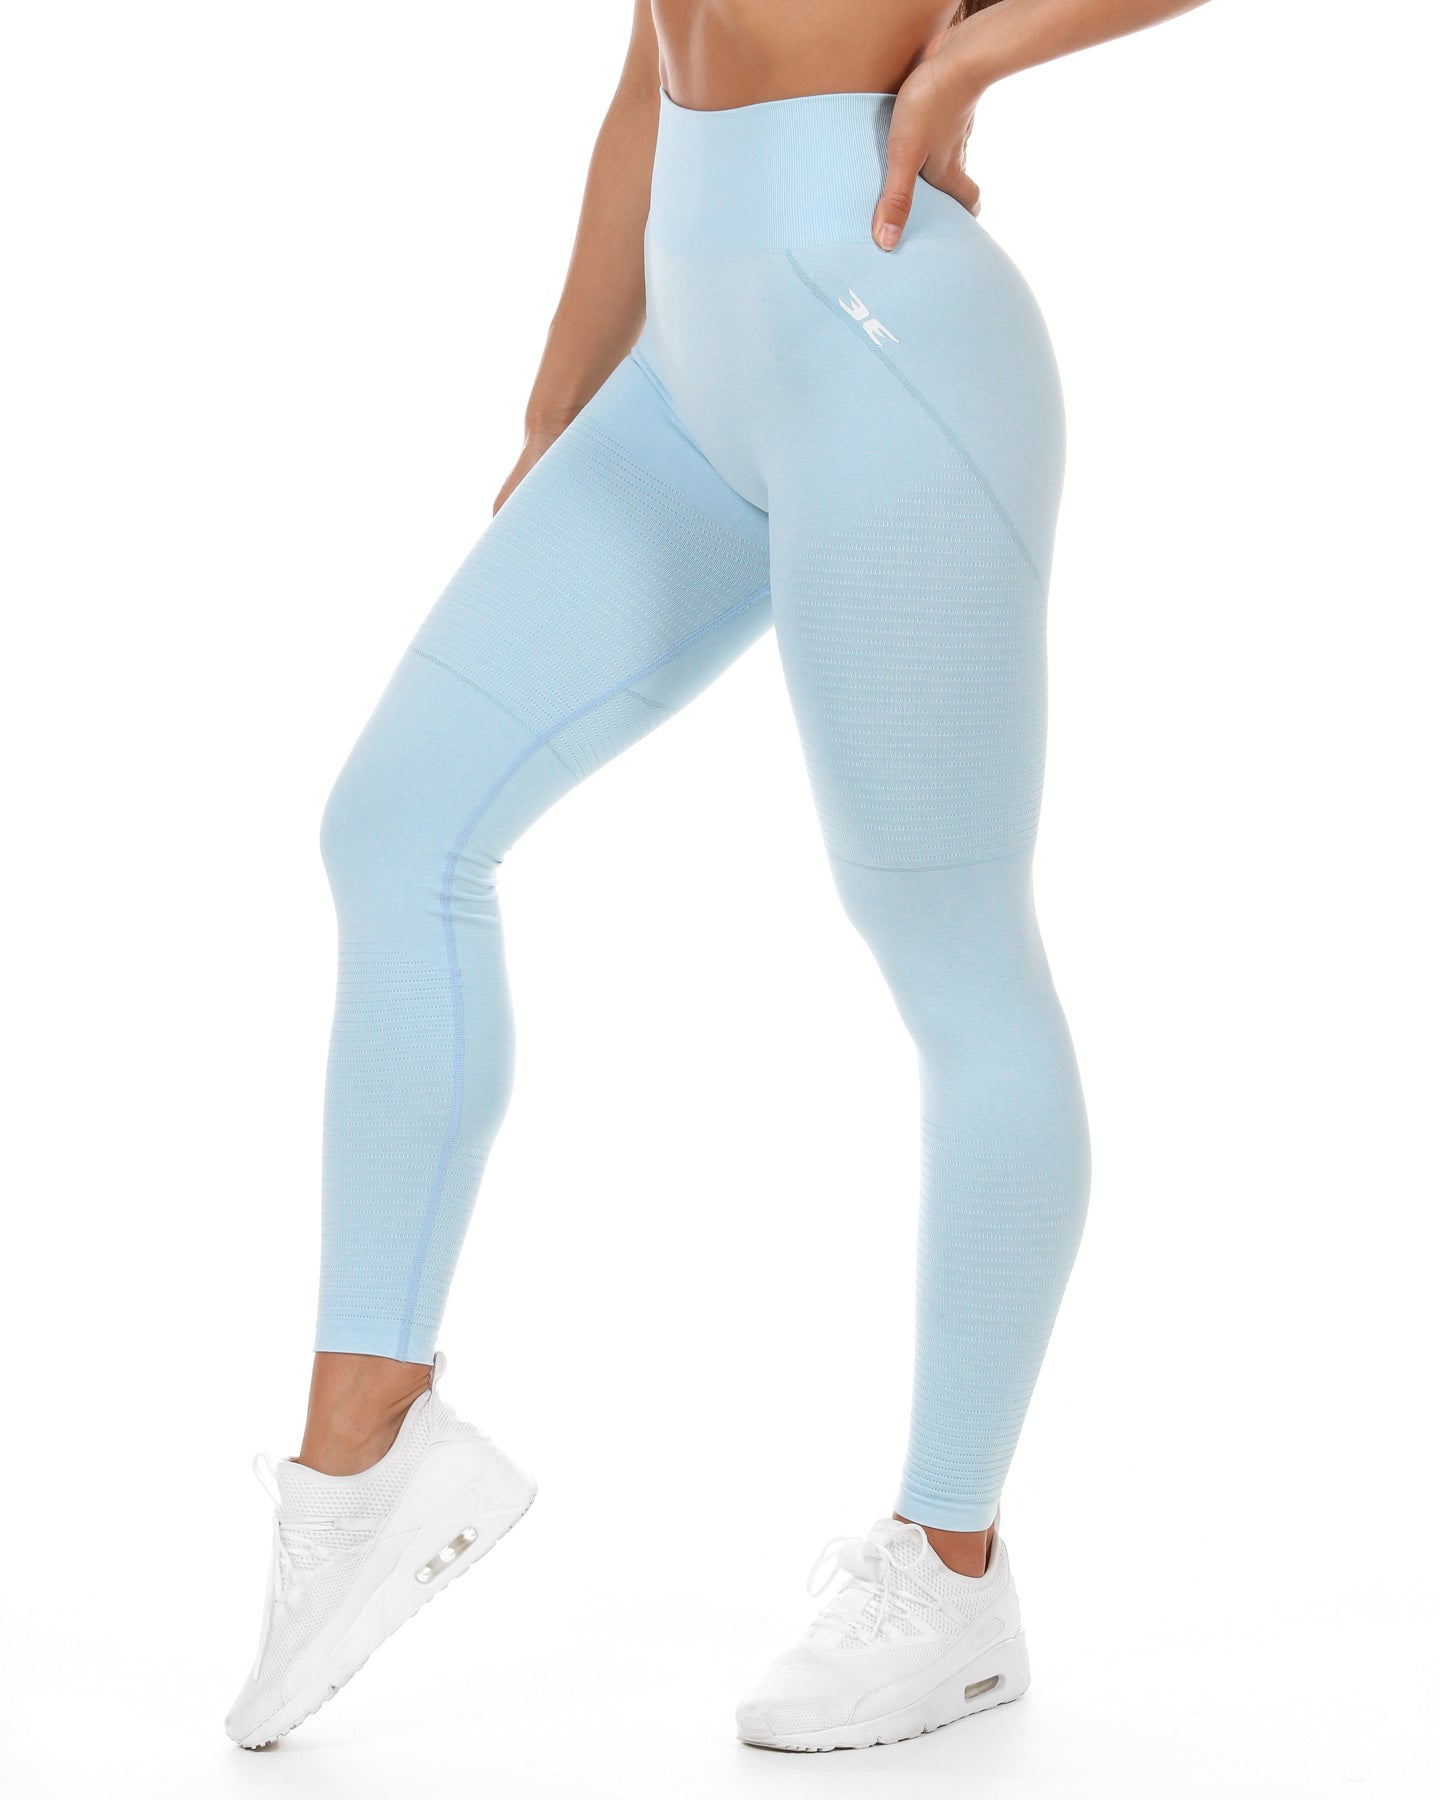 Elite Seamless Leggings - Pale Blue